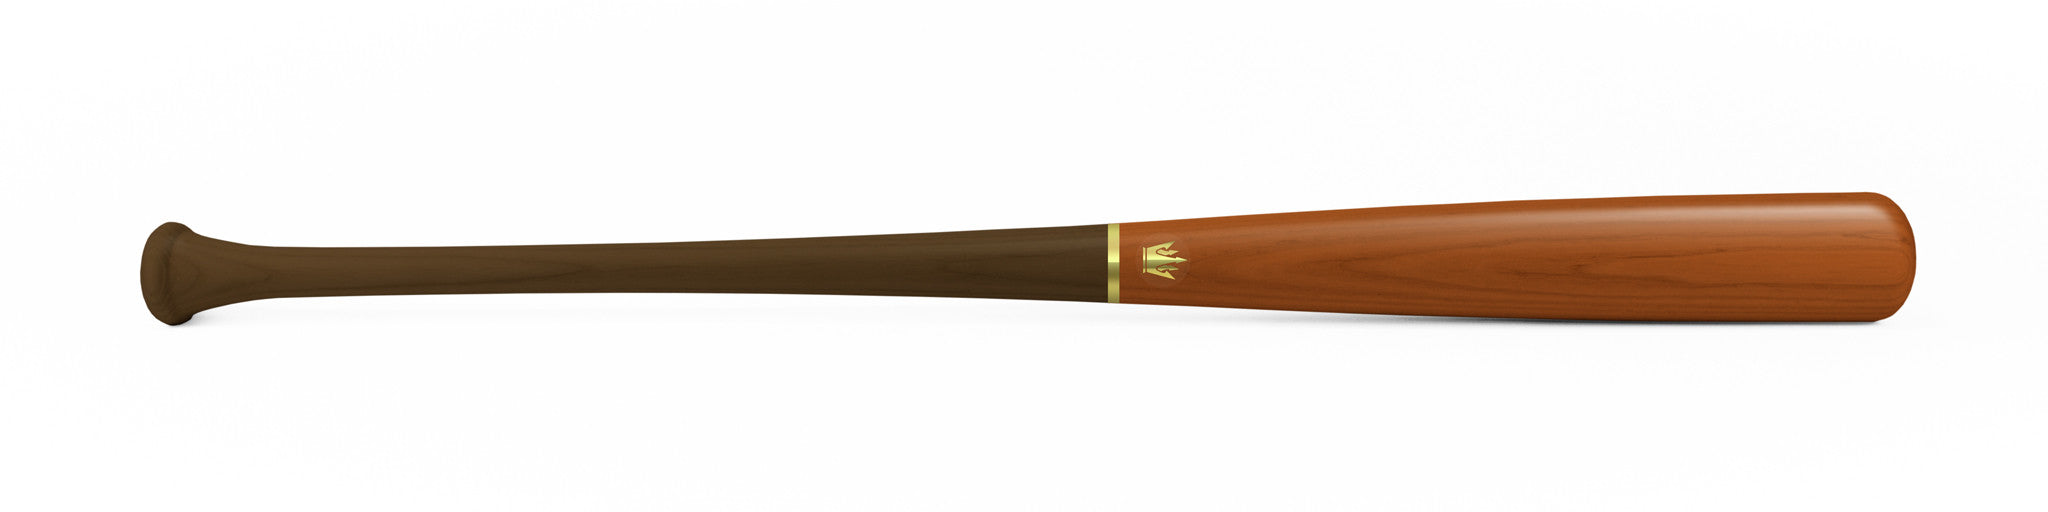 Wood bat - Ash model 271 Kodiak Dip - 29